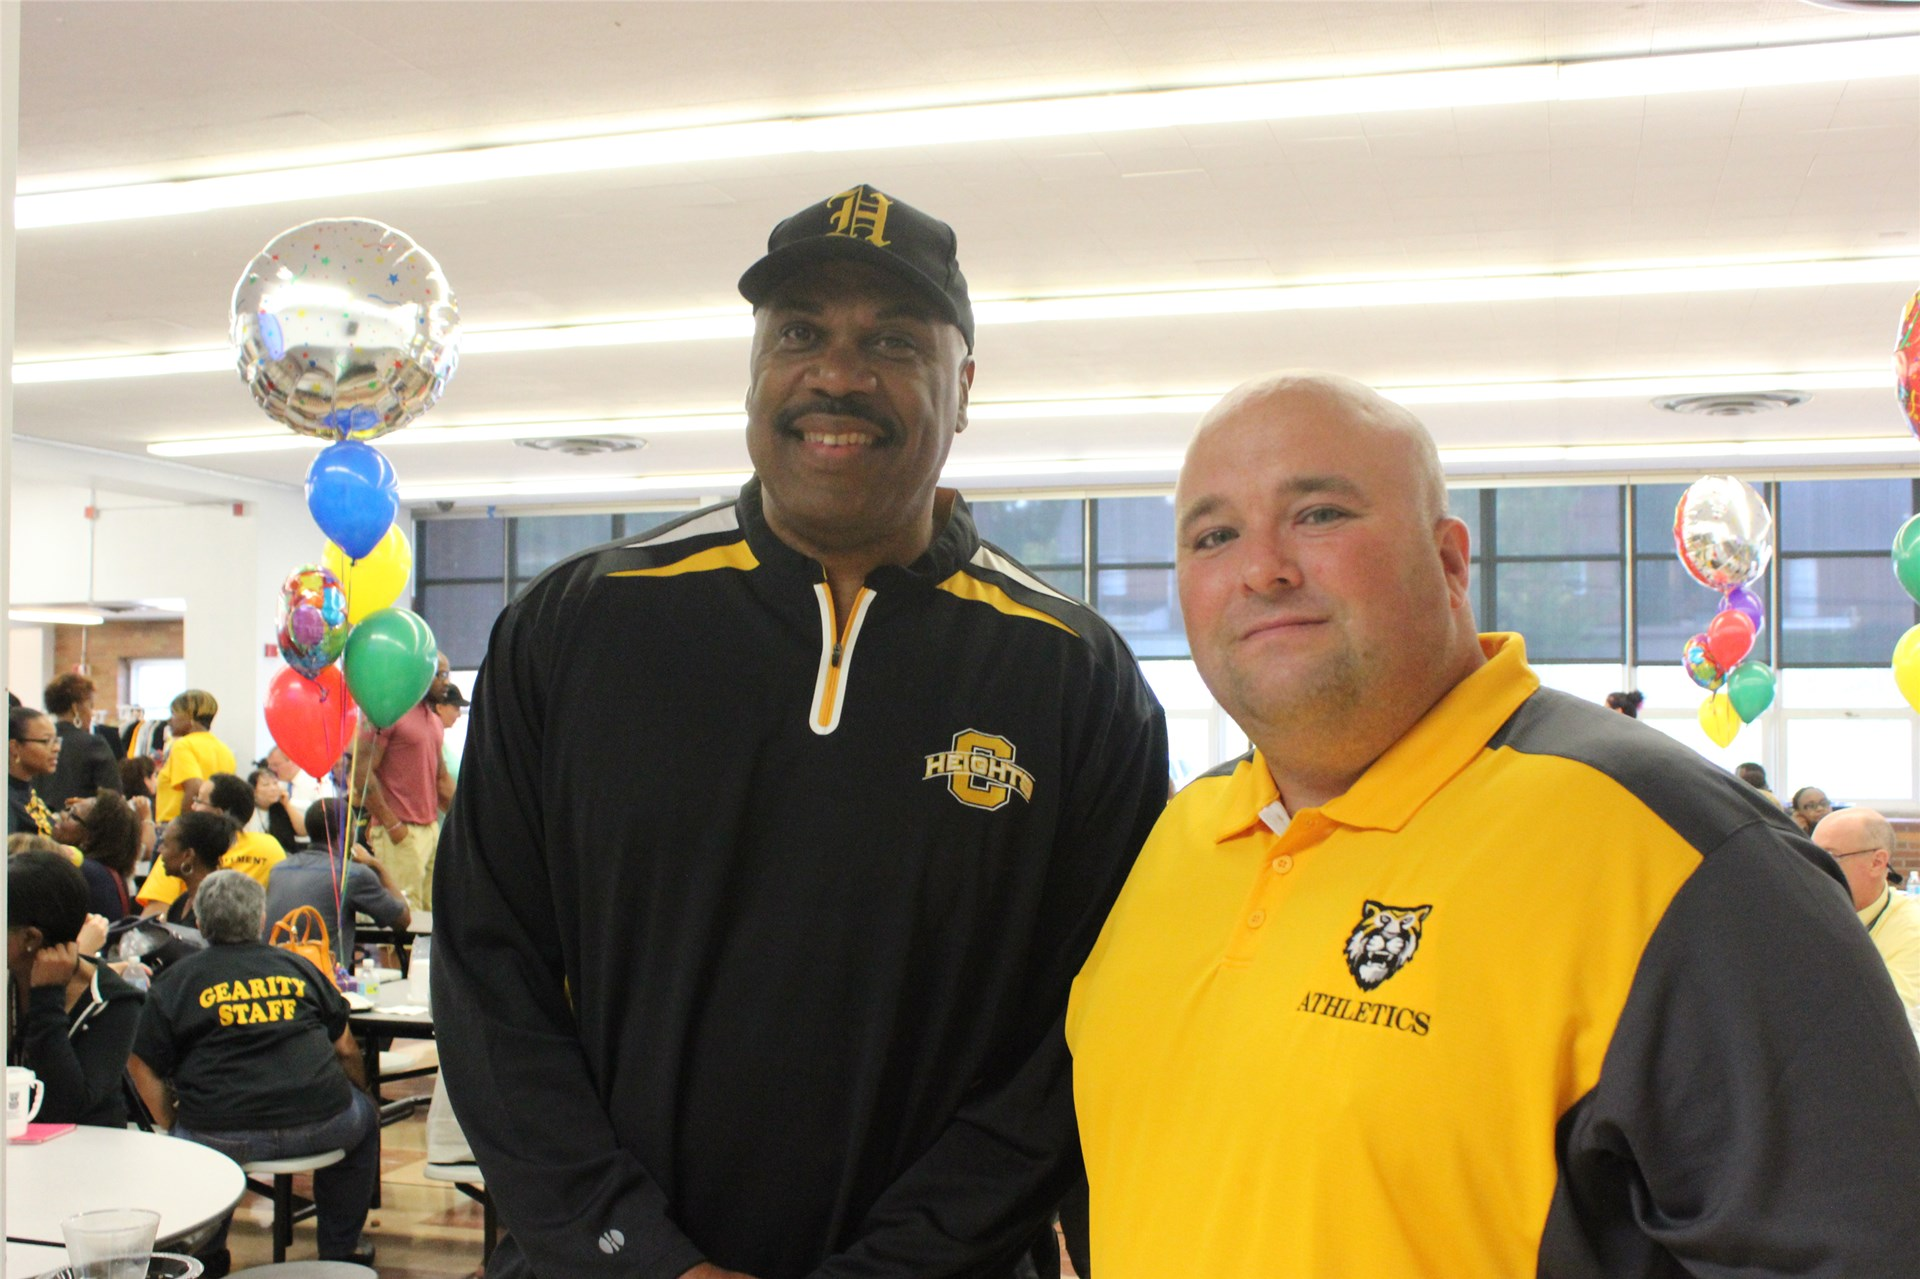 Heights High Supervisor of Athletics Dwight Hollins and Teacher Sean Evans